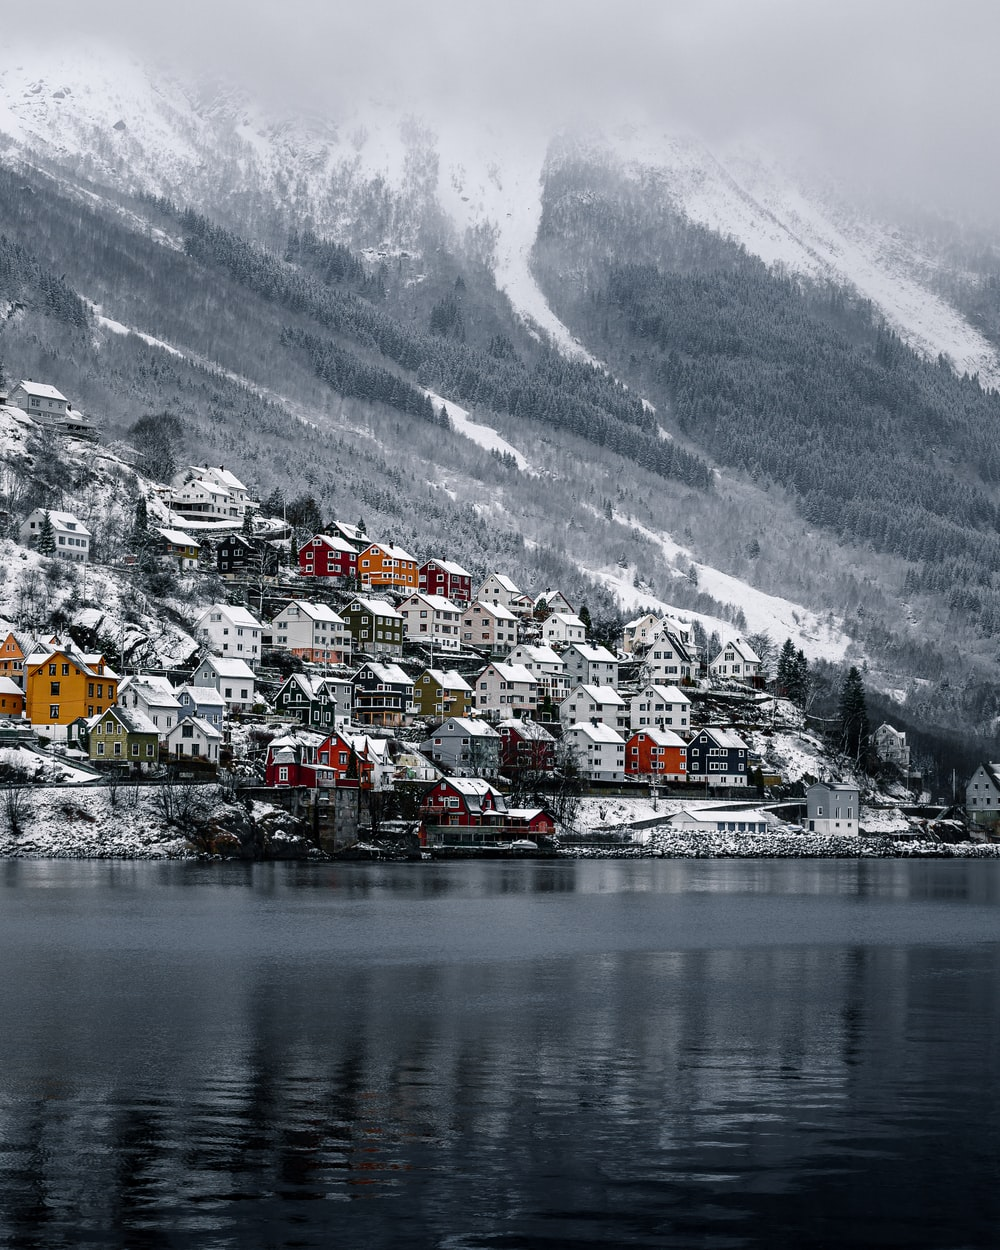 houses near body of water and snow covered mountain during daytime